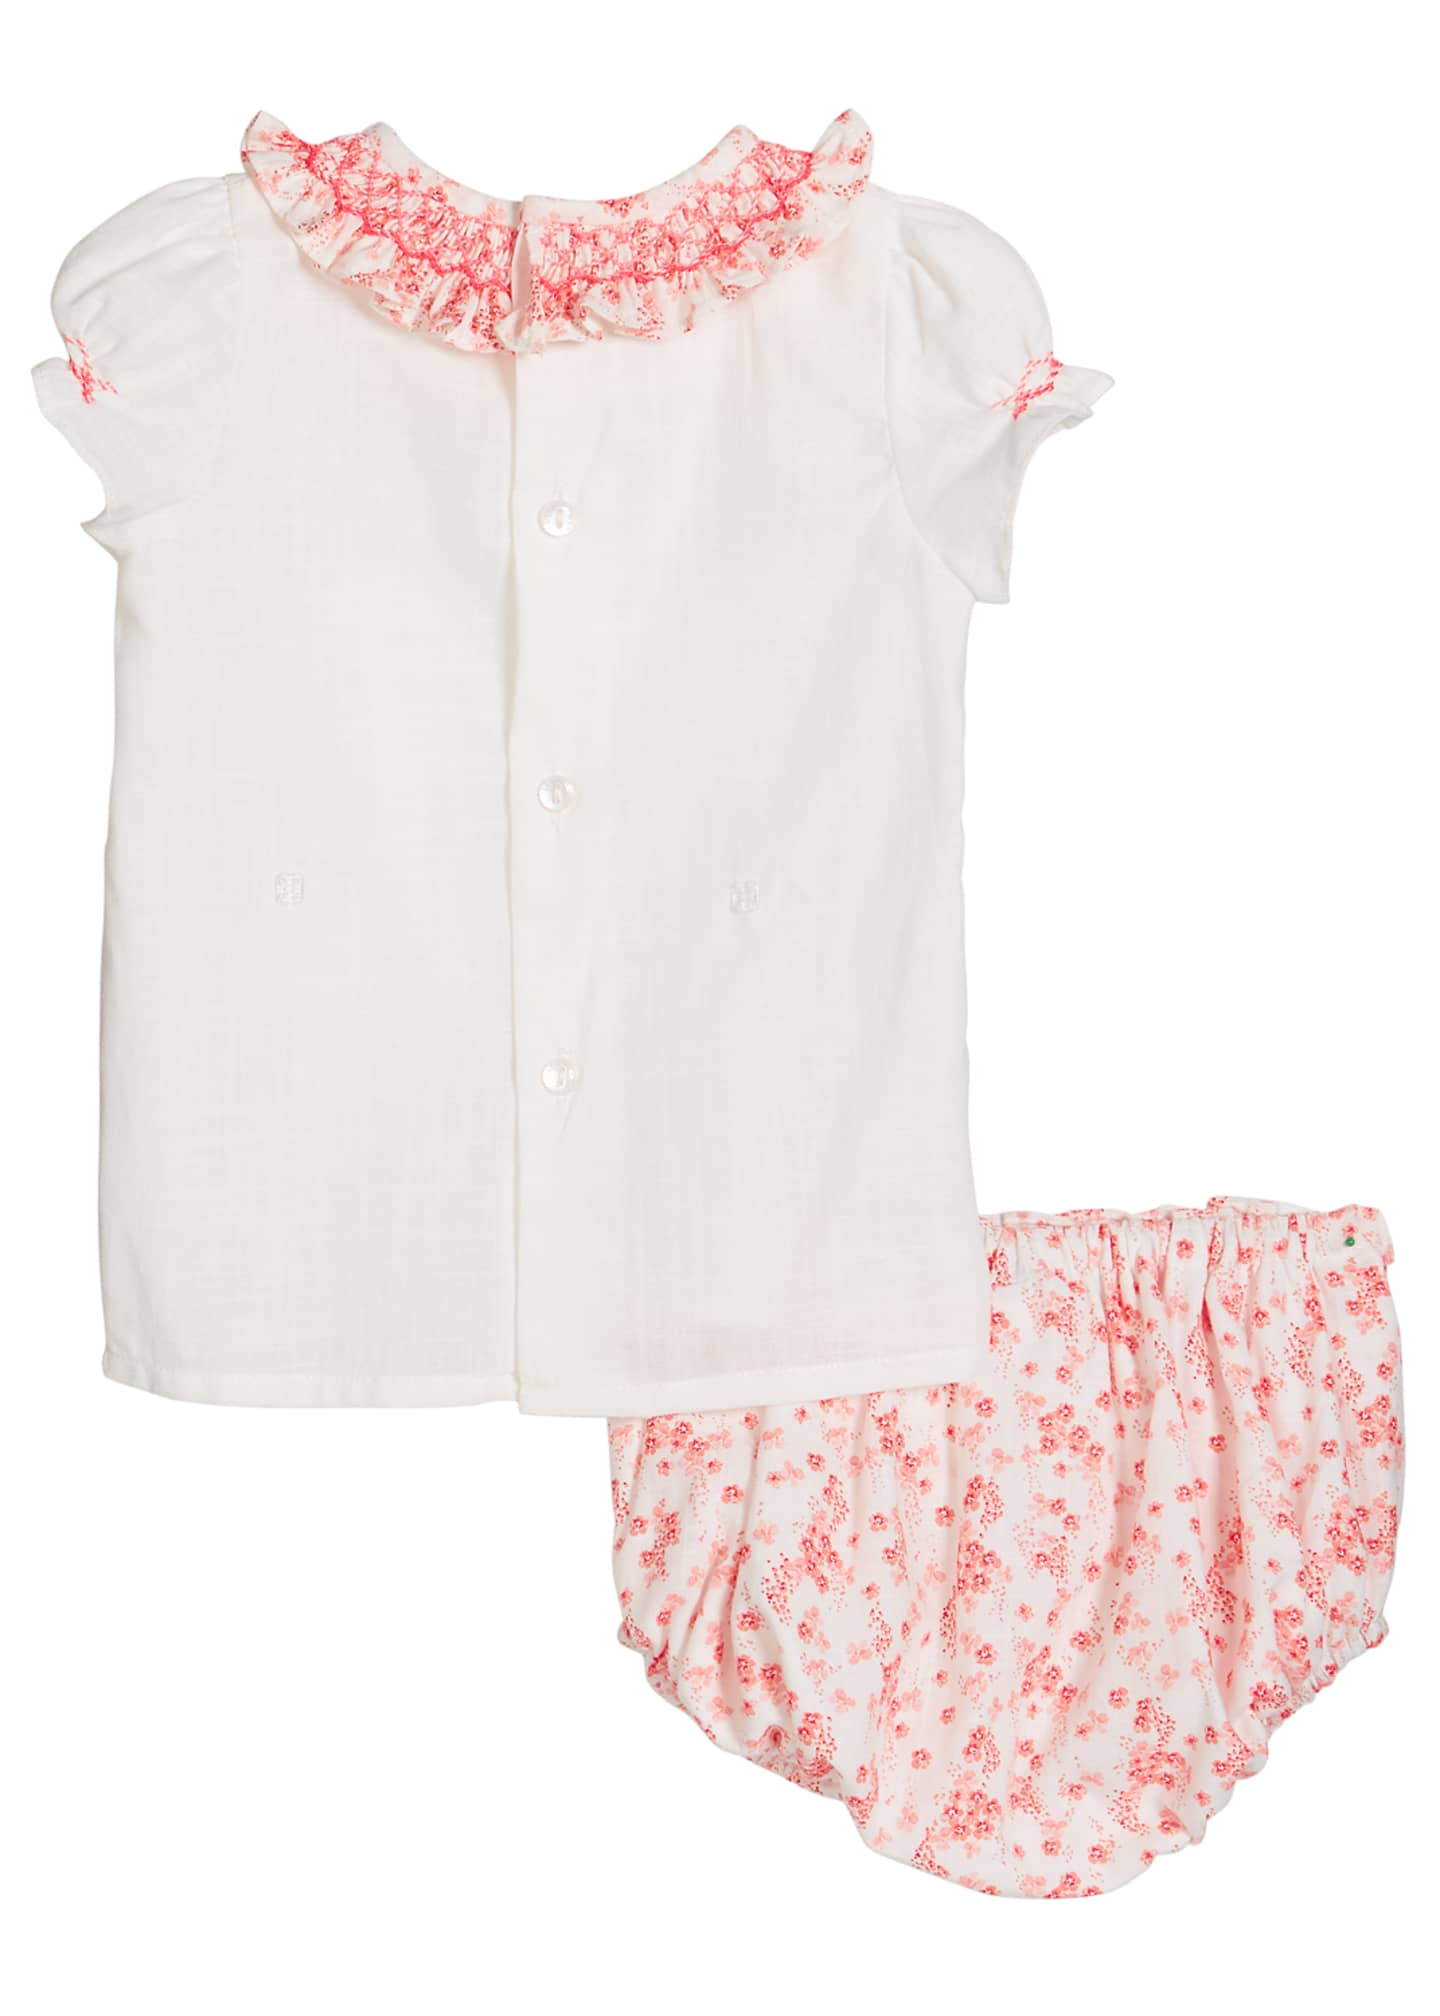 Image 2 of 2: Girl's Coral Floral-Print Smocked Top w/ Bloomers, Size 3-9 Months